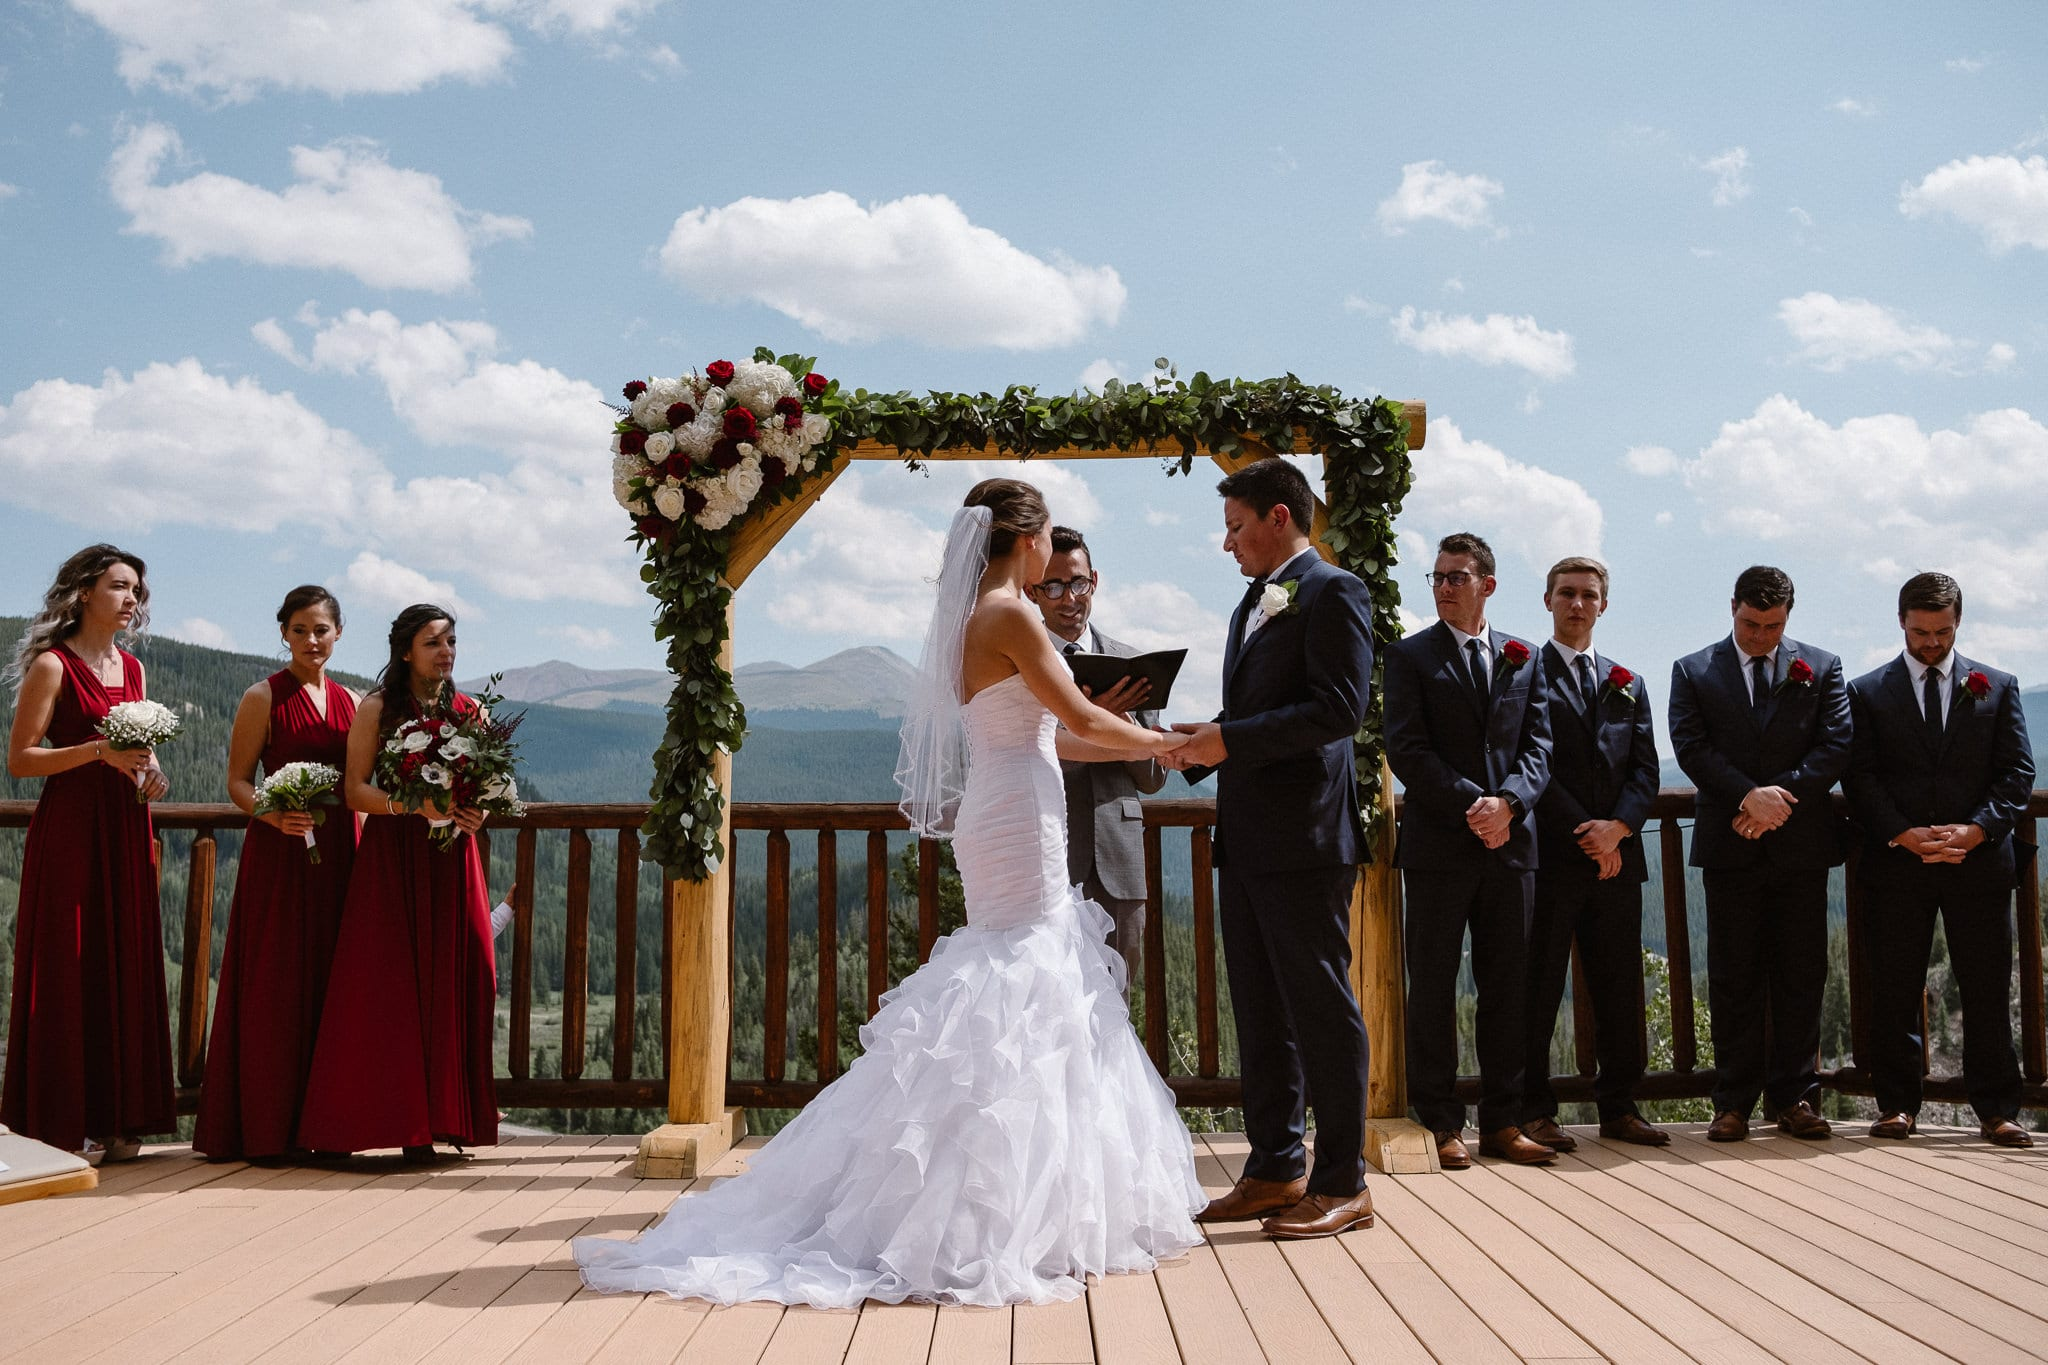 Lodge at Breckenridge Wedding Photographer, Colorado mountain wedding photographer, intimate wedding ceremony on deck with mountain views, vow exchange